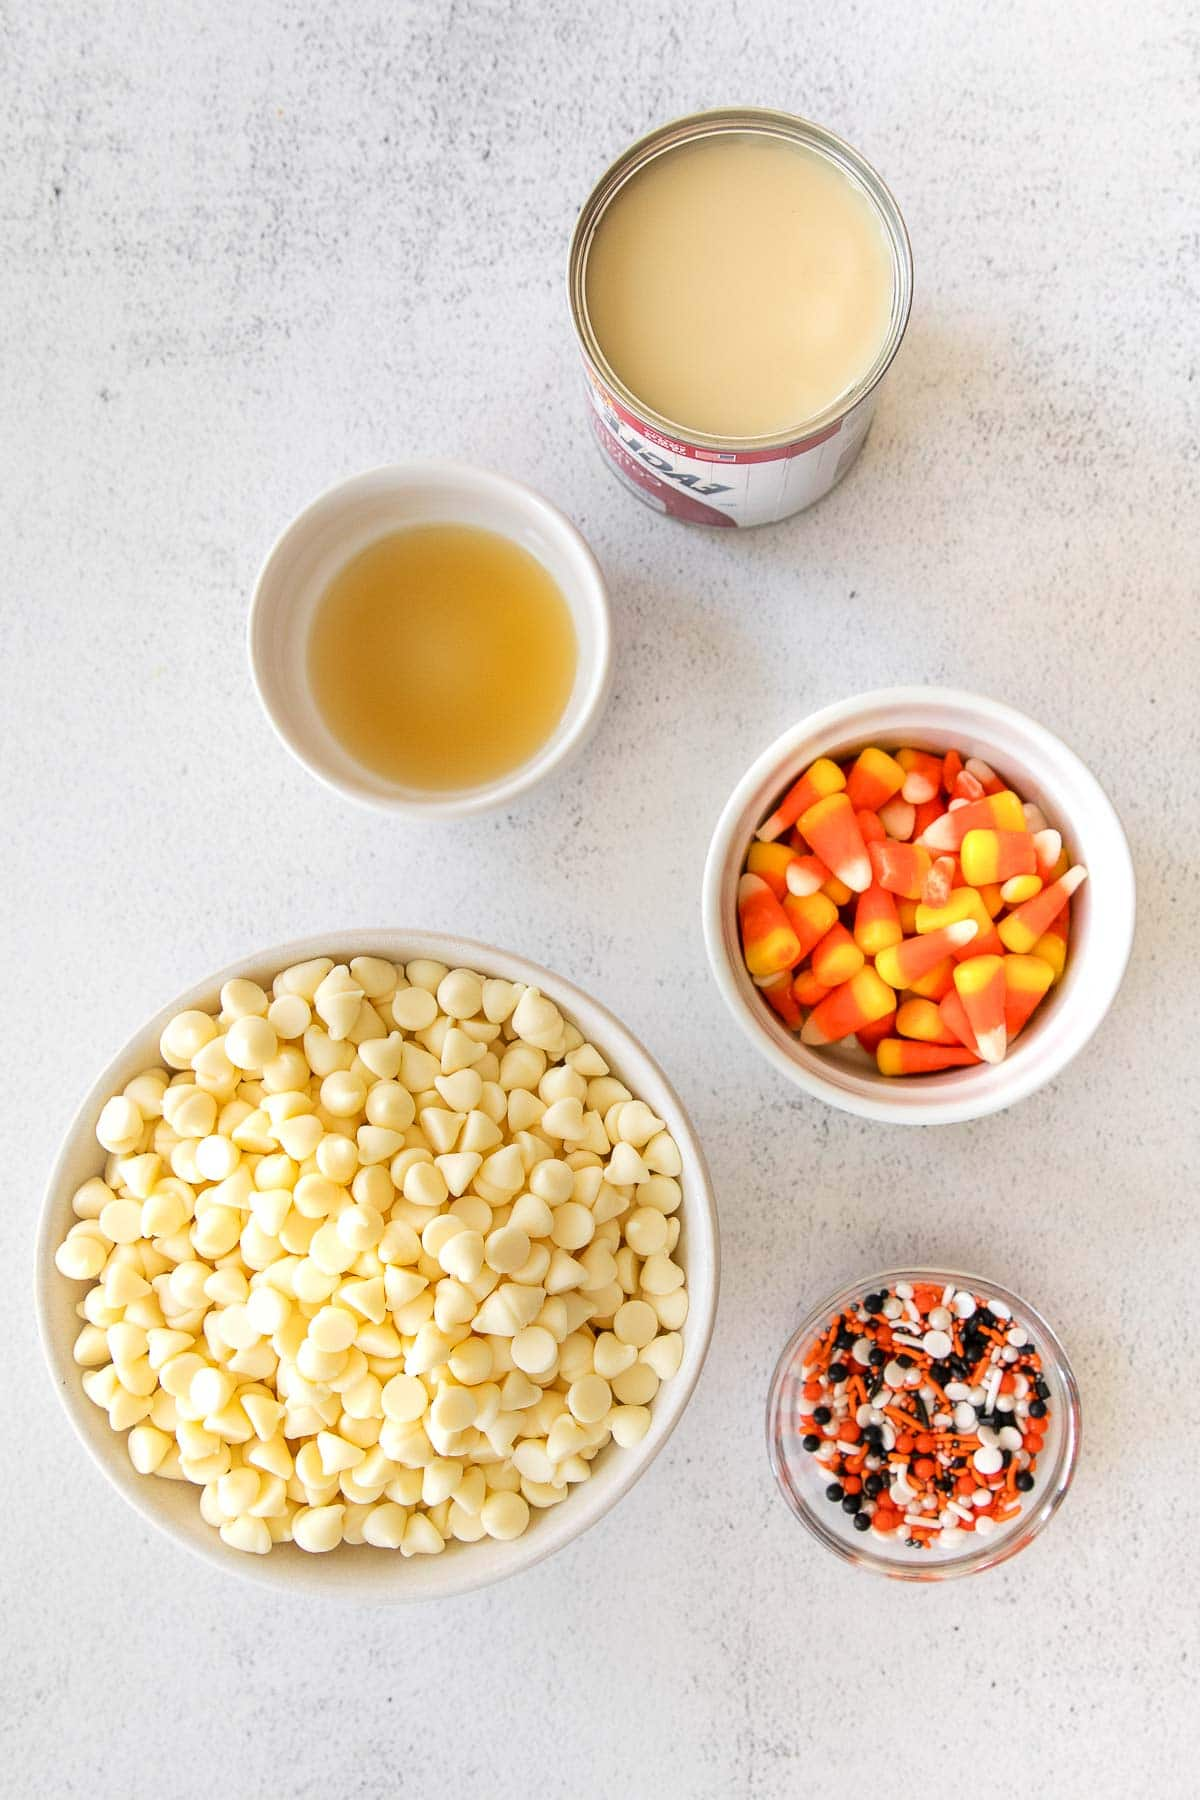 several bowls filled with white chocolate chips, halloween sprinkles, candy corn, vanilla extract and a can of condensed milk